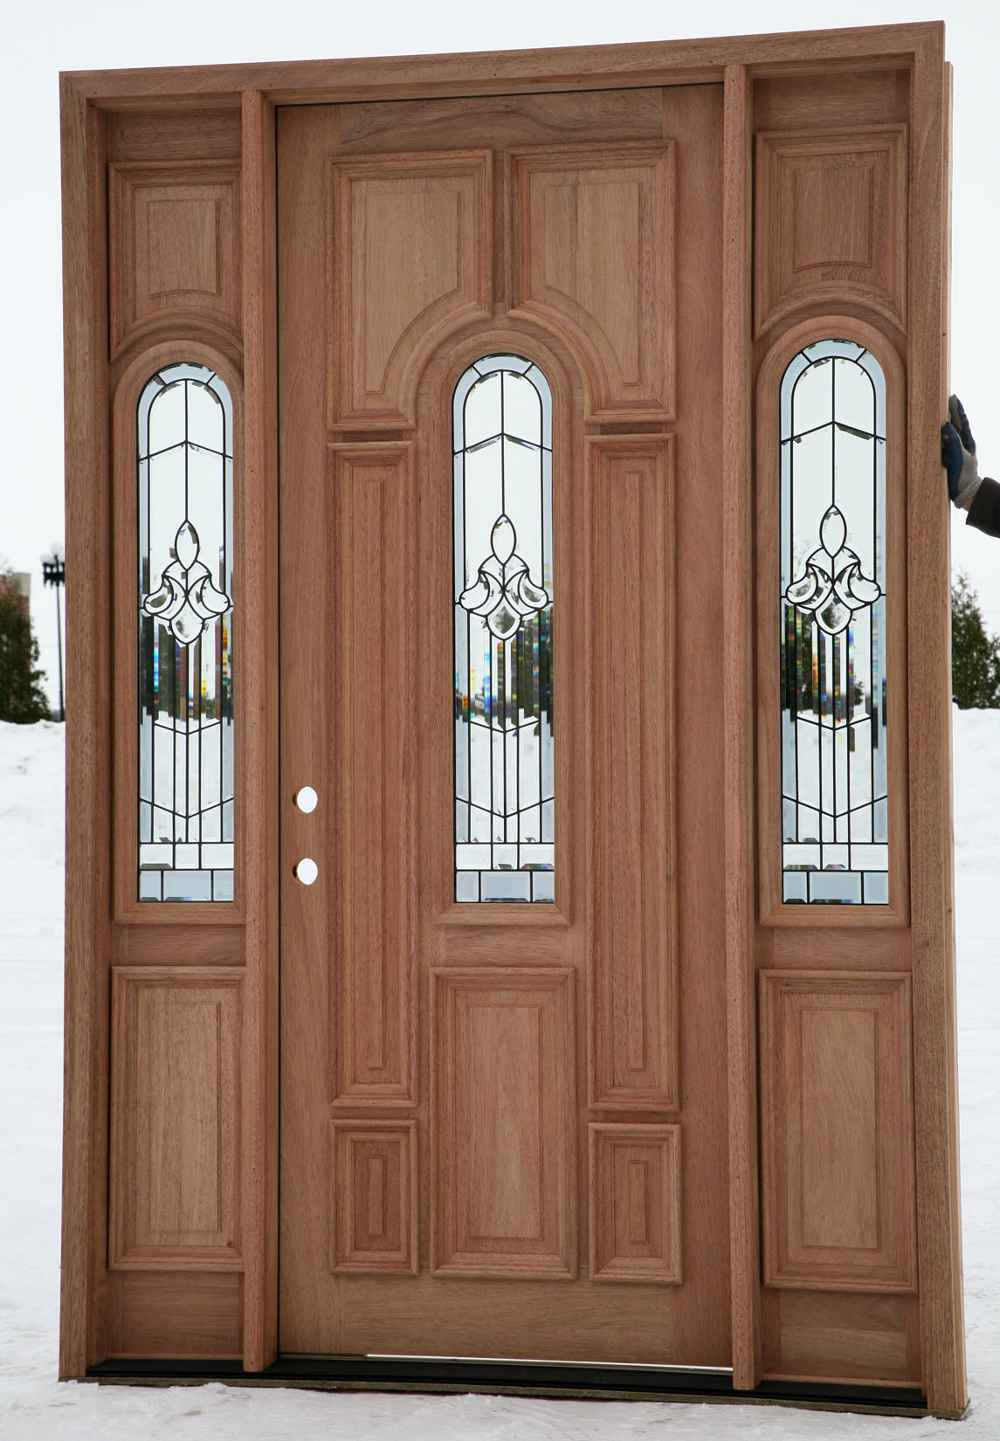 Cheap exterior doors feel the home for Wood front entry doors